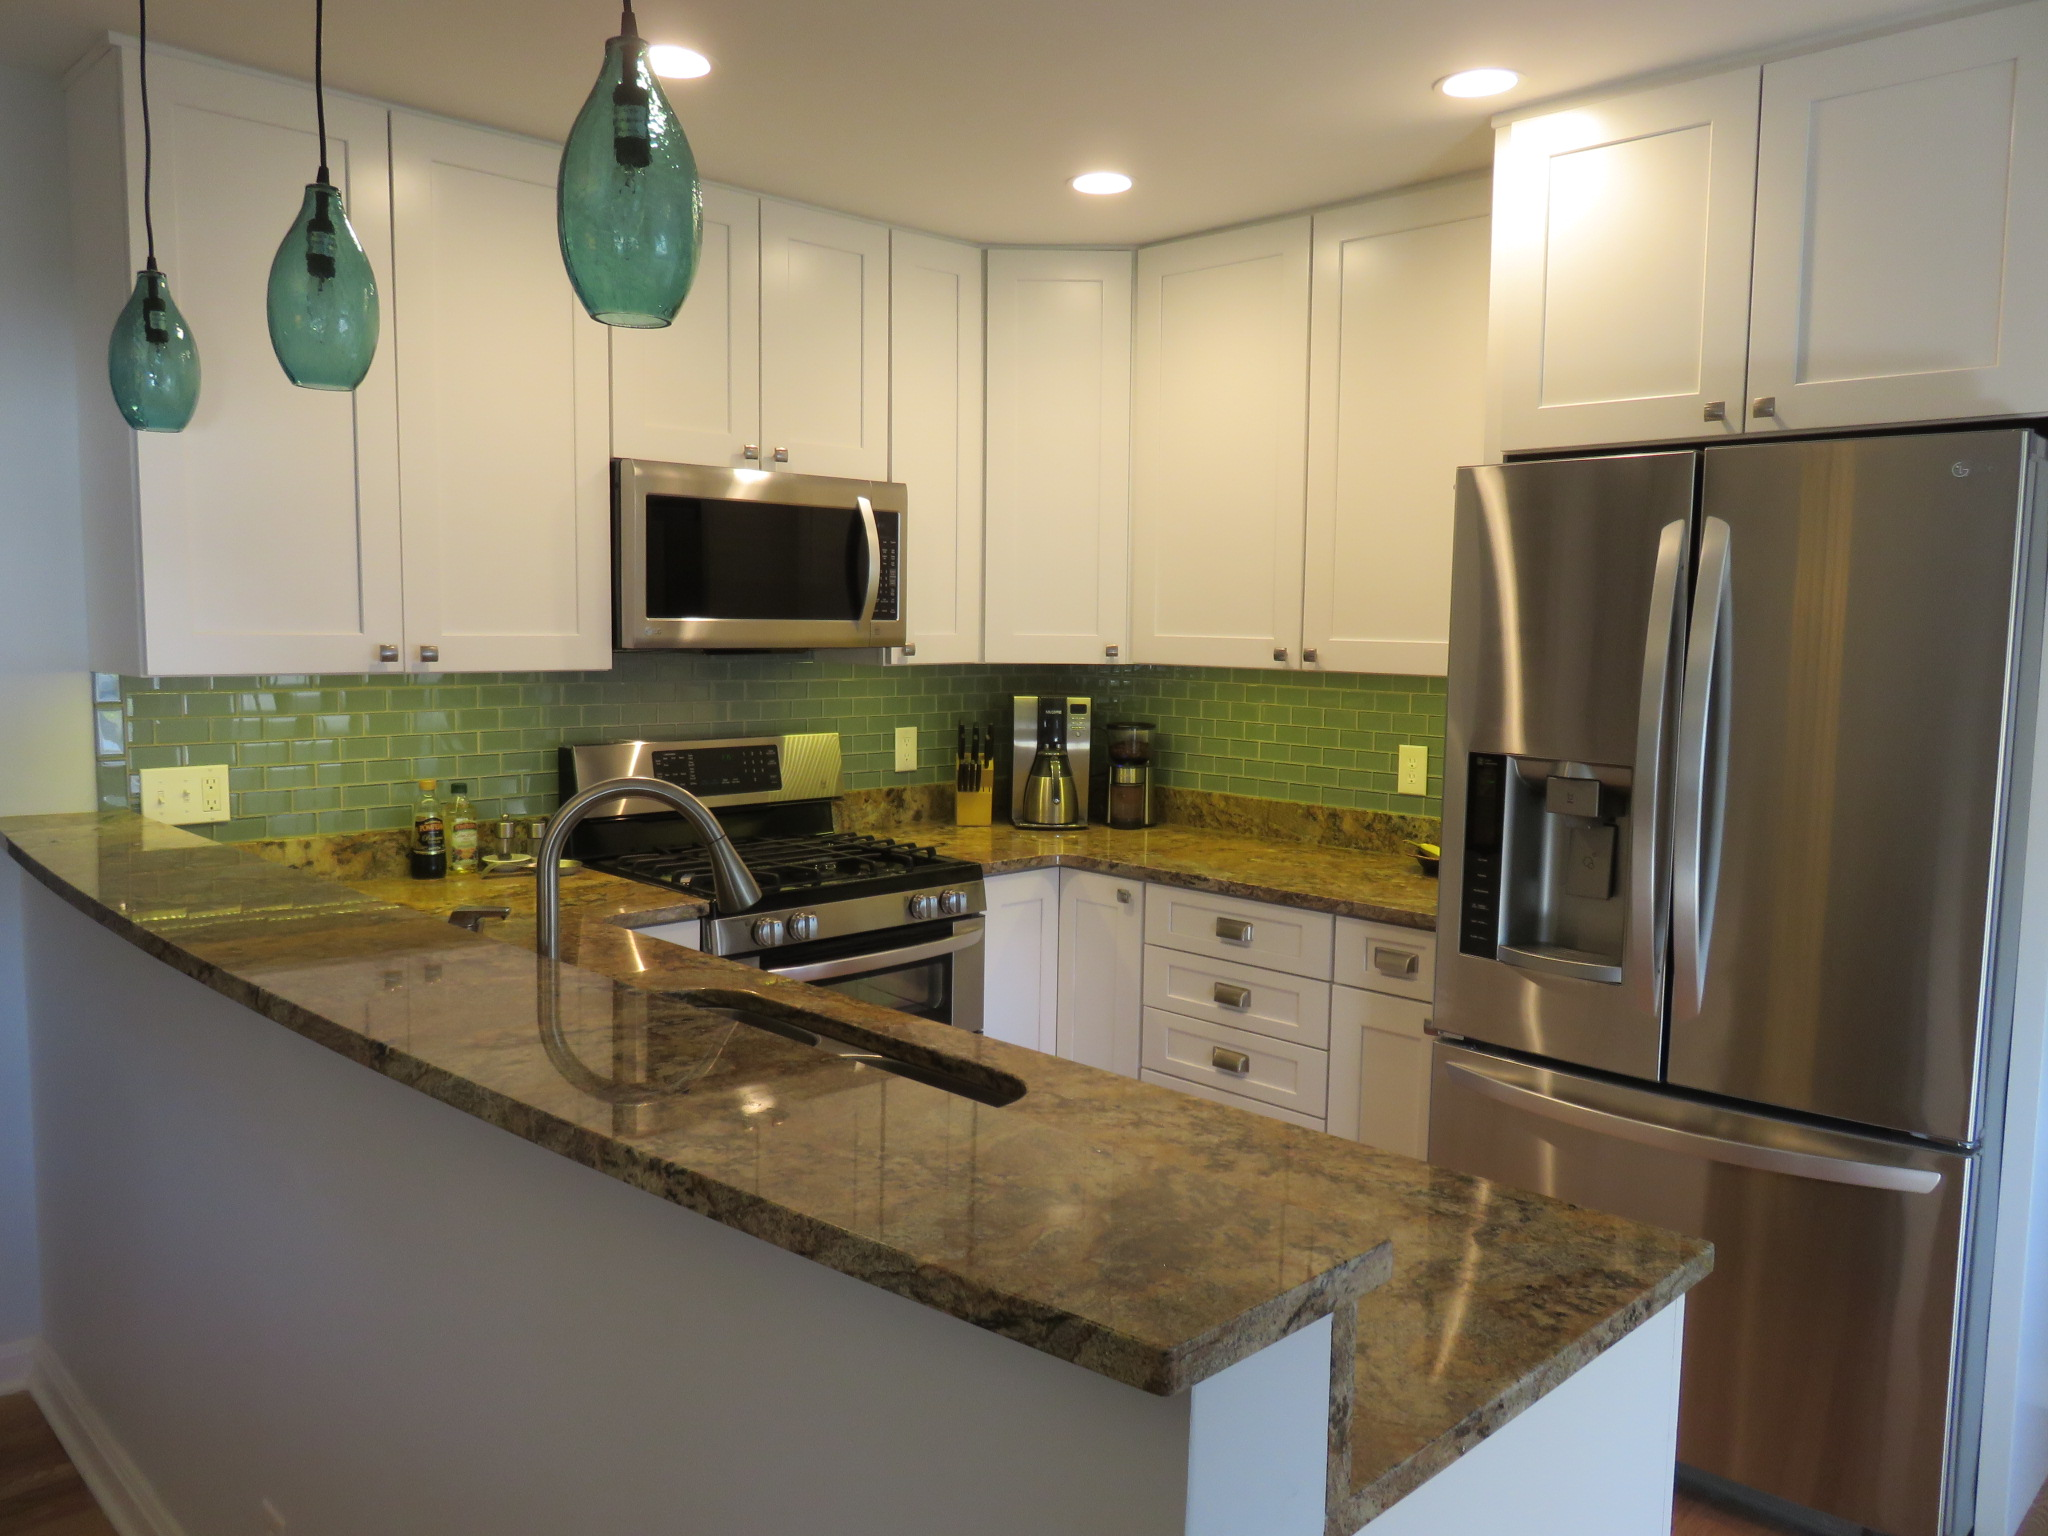 Kitchen Remodel: Before and After (Part 3)